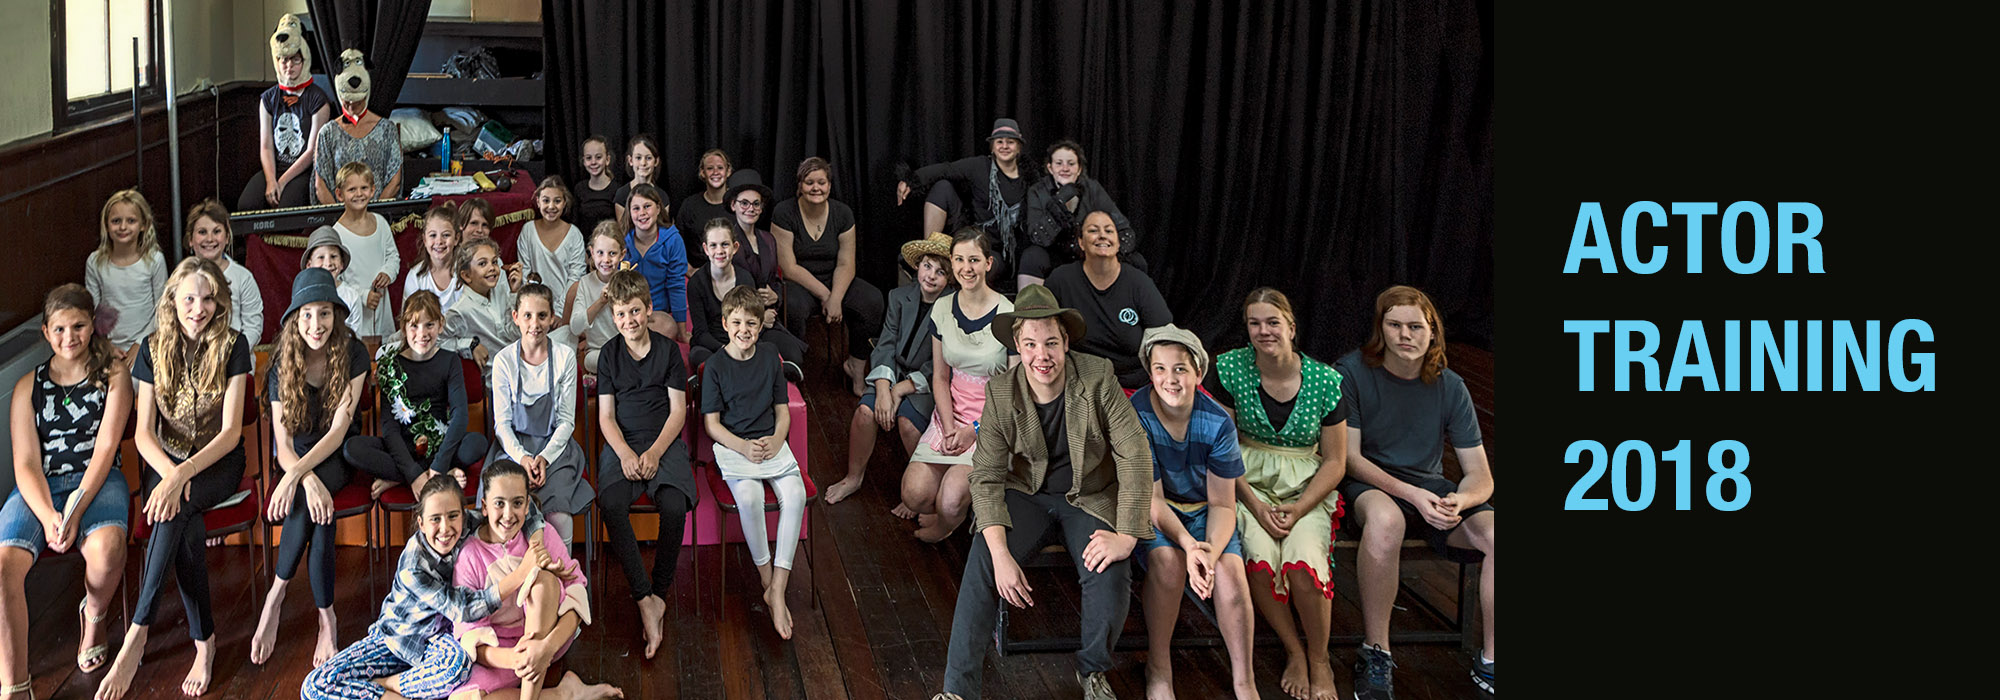 Performance workshops / Actor training at Full Throttle Theatre Townsville 2018